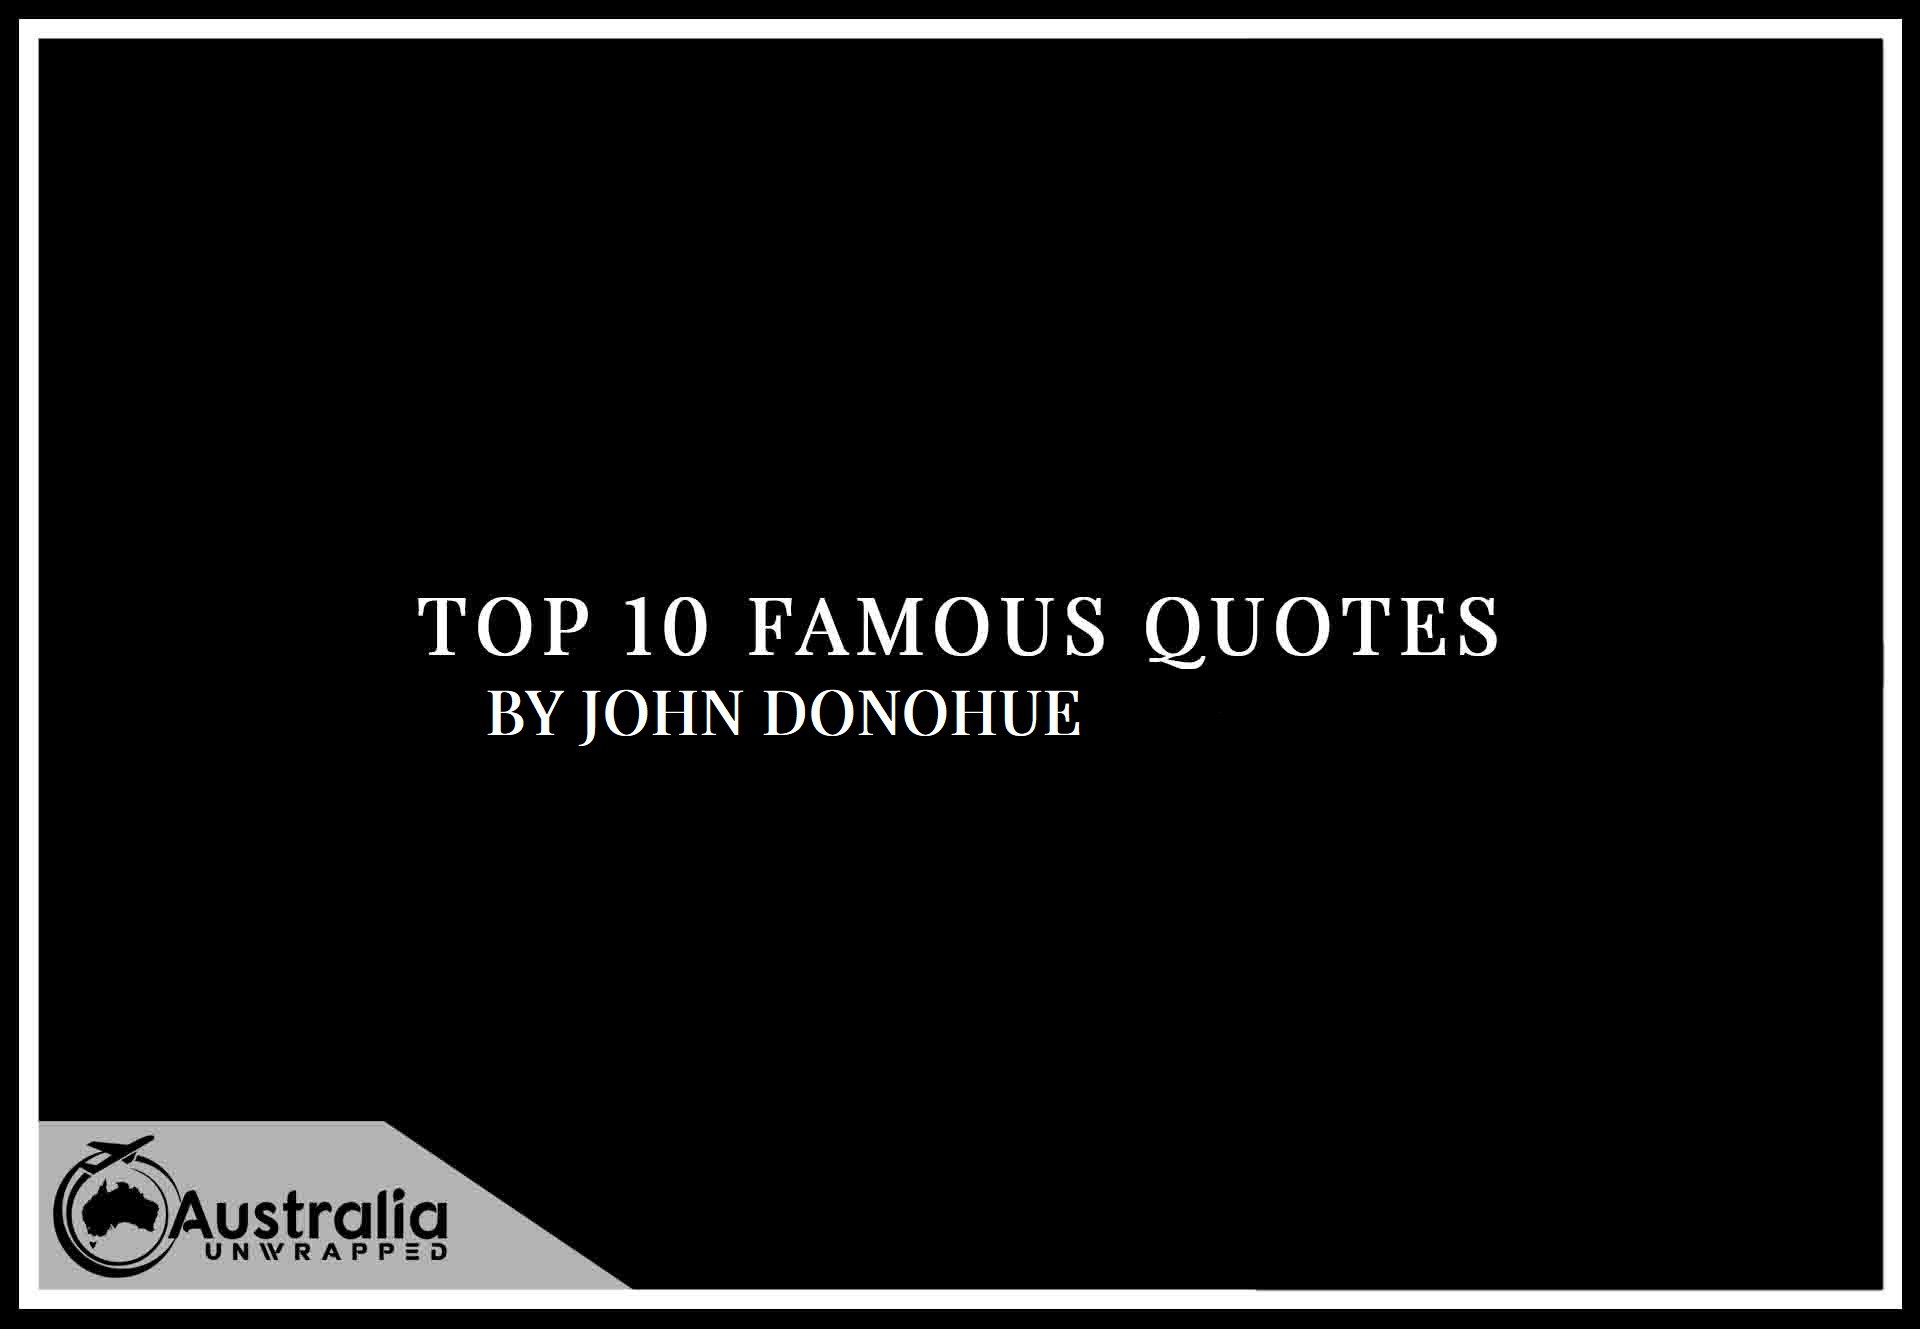 Top 10 Famous Quotes by Author John Donohue